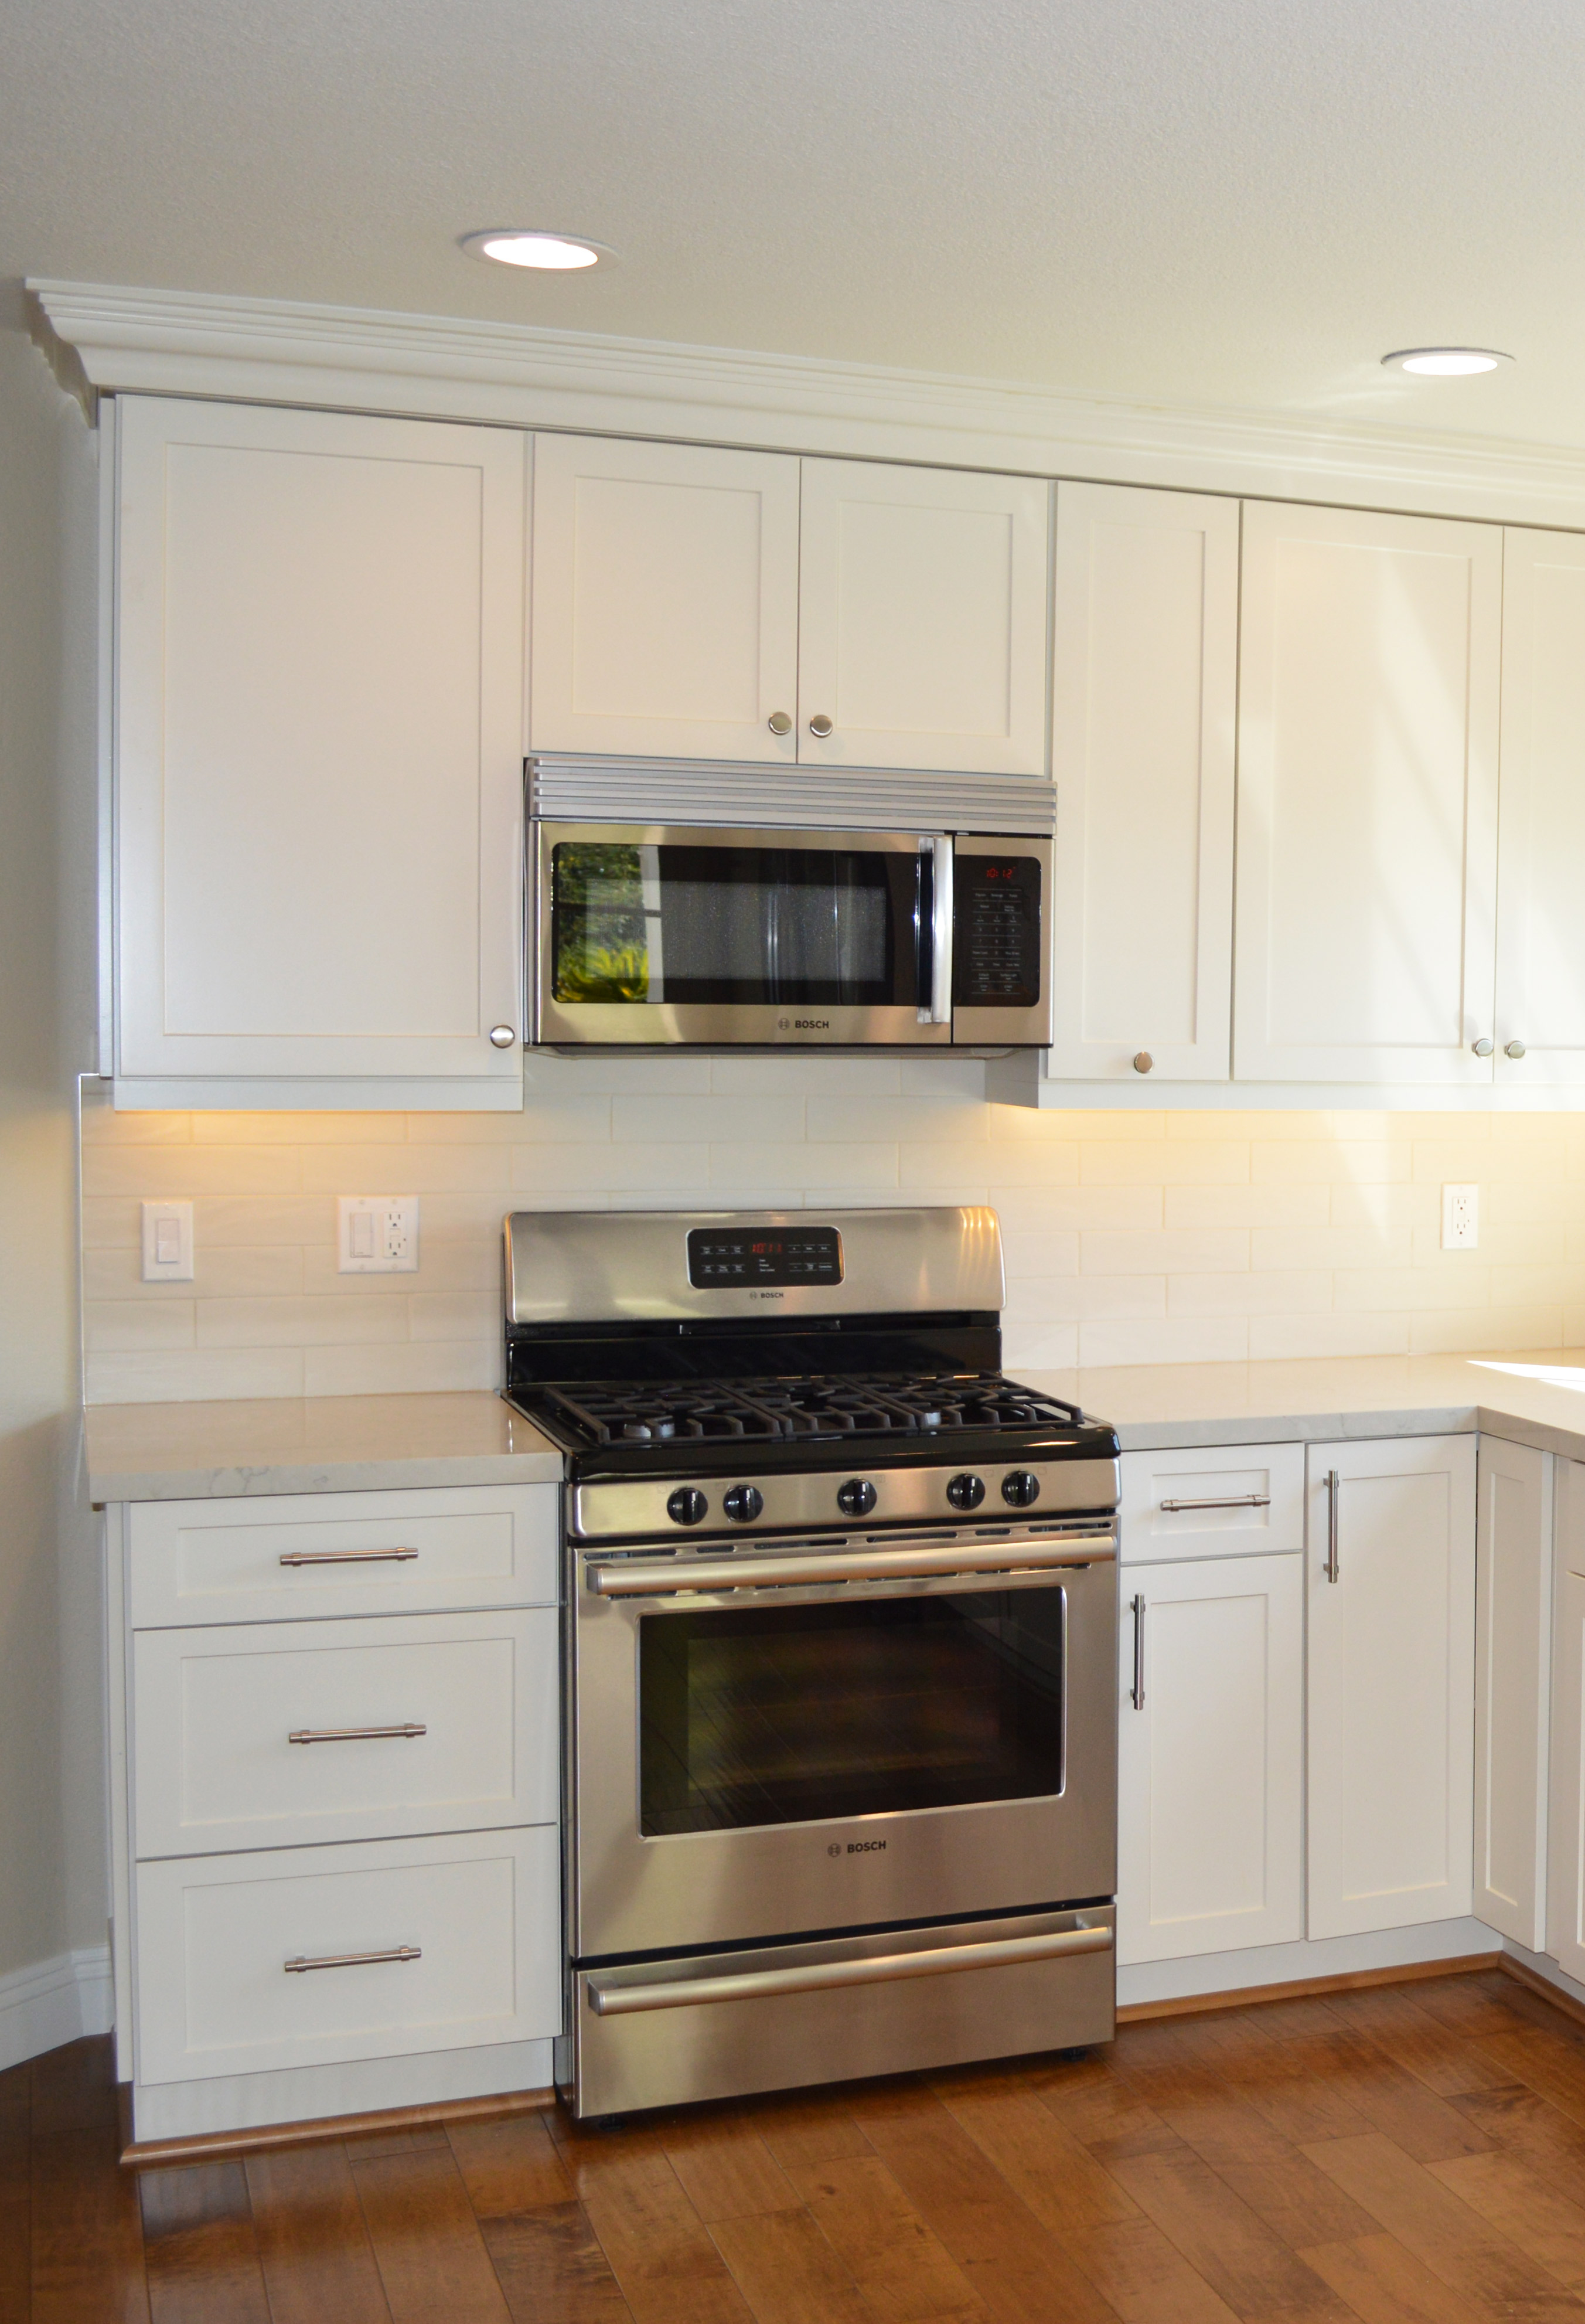 Gorgeous Coconut Shaker Cabinets Were Chosen By This Homeowner To Create  More Warmth In This Beautiful Sized Kitchen. The Color Of These Cabinets  Brings Out ...